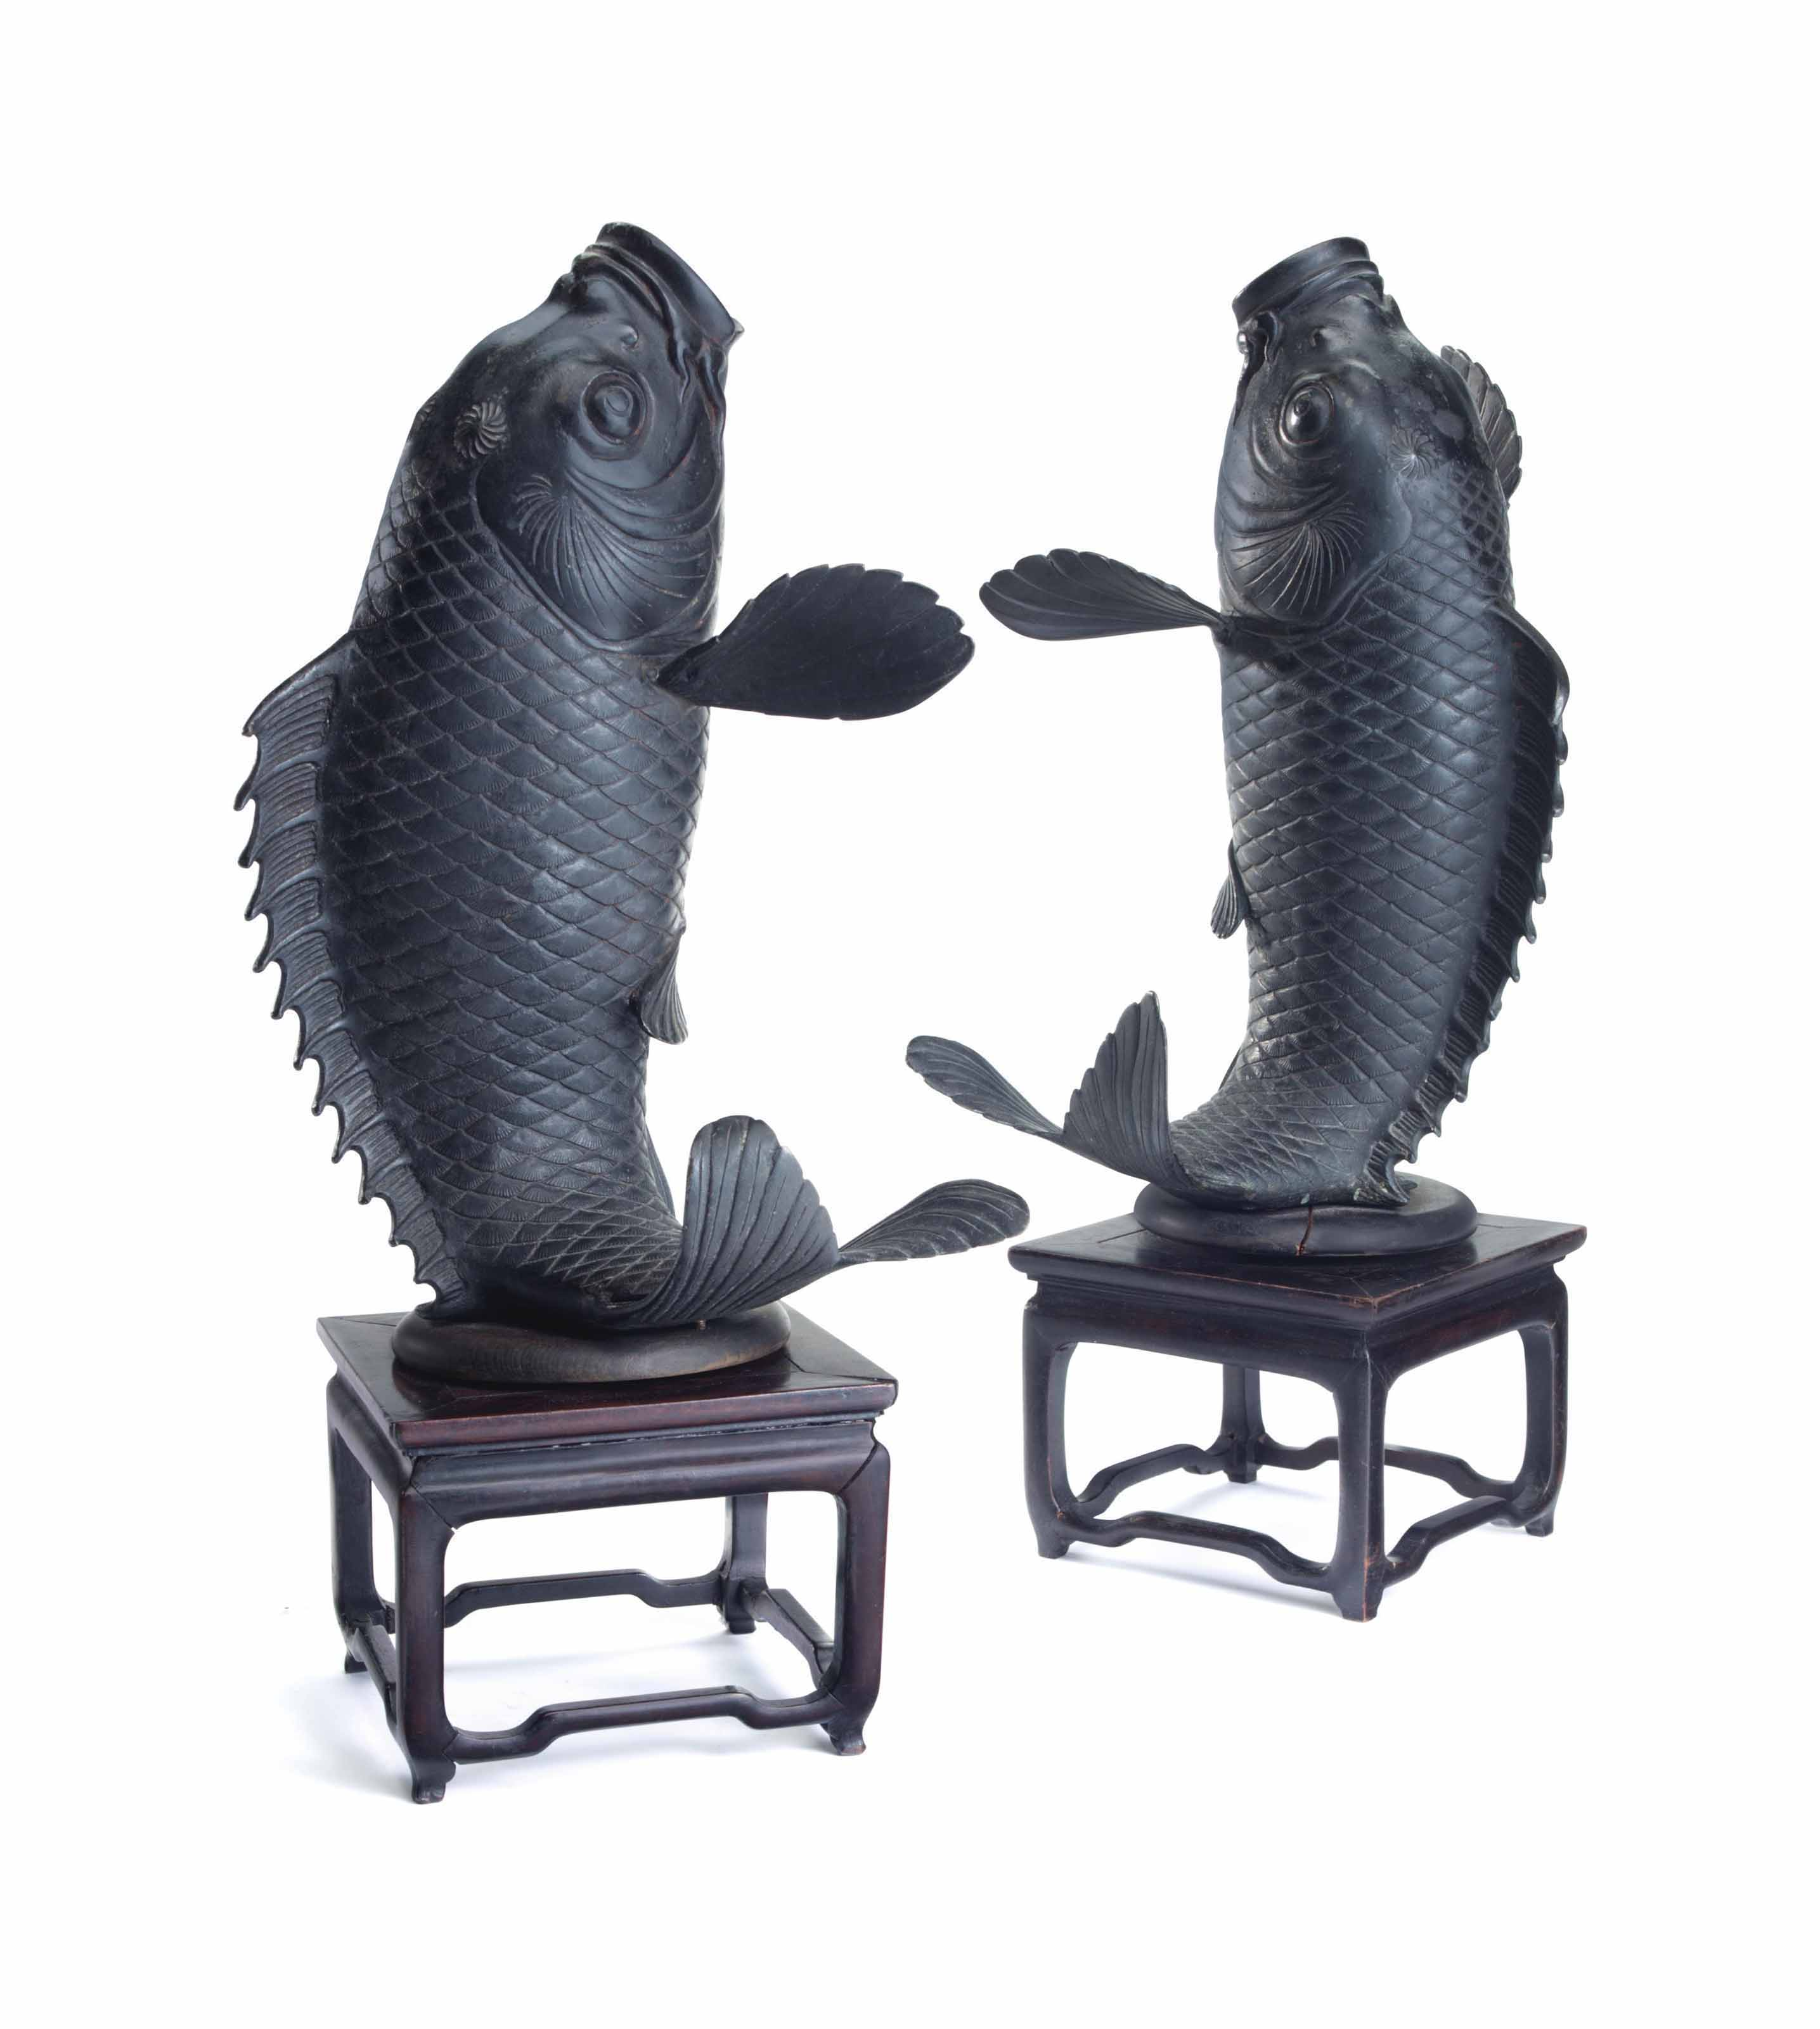 A PAIR OF JAPANESE BRONZE MODE